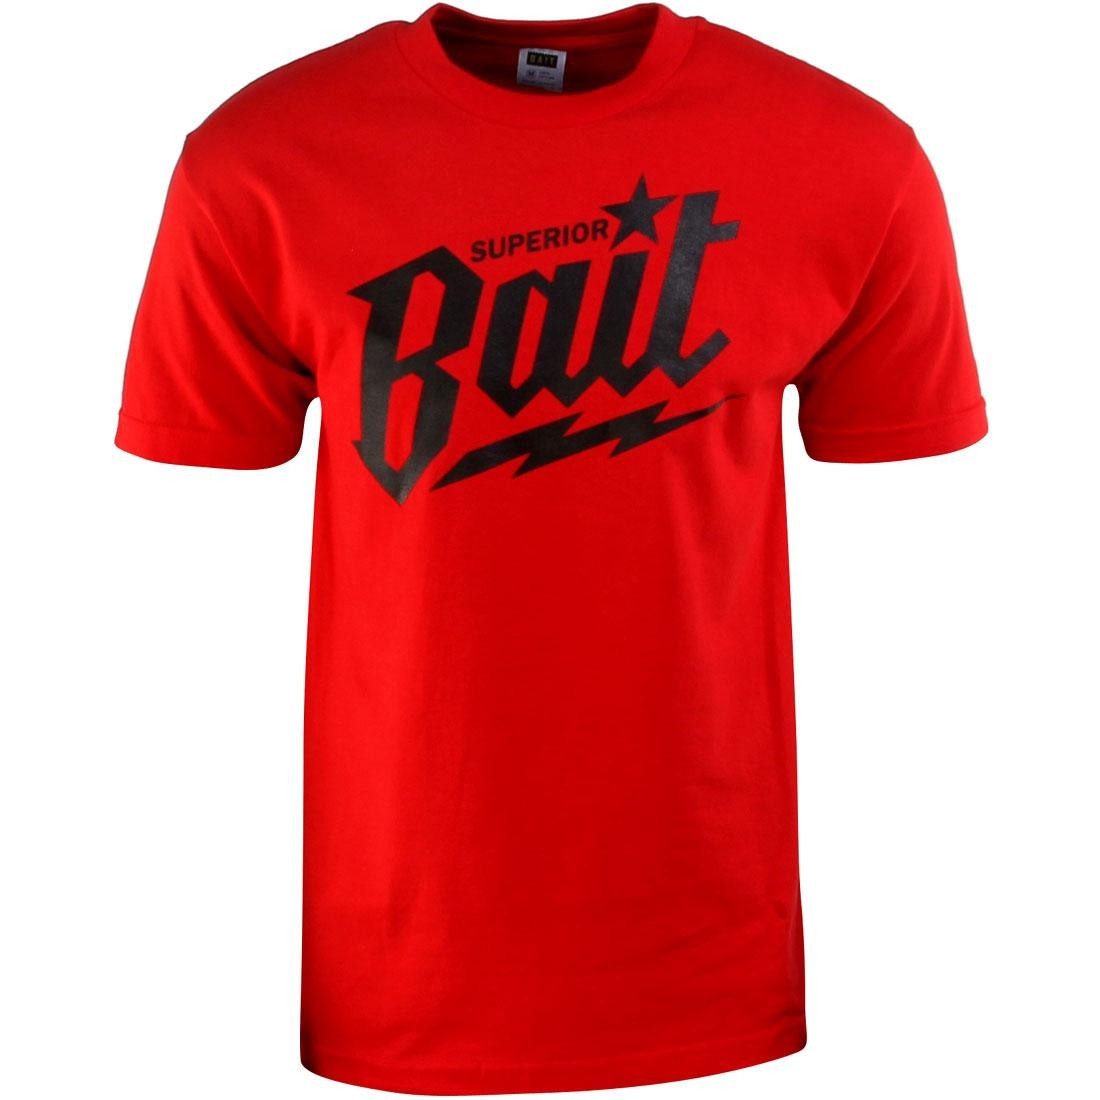 BAIT Superior BAIT Tee (red / black / black)